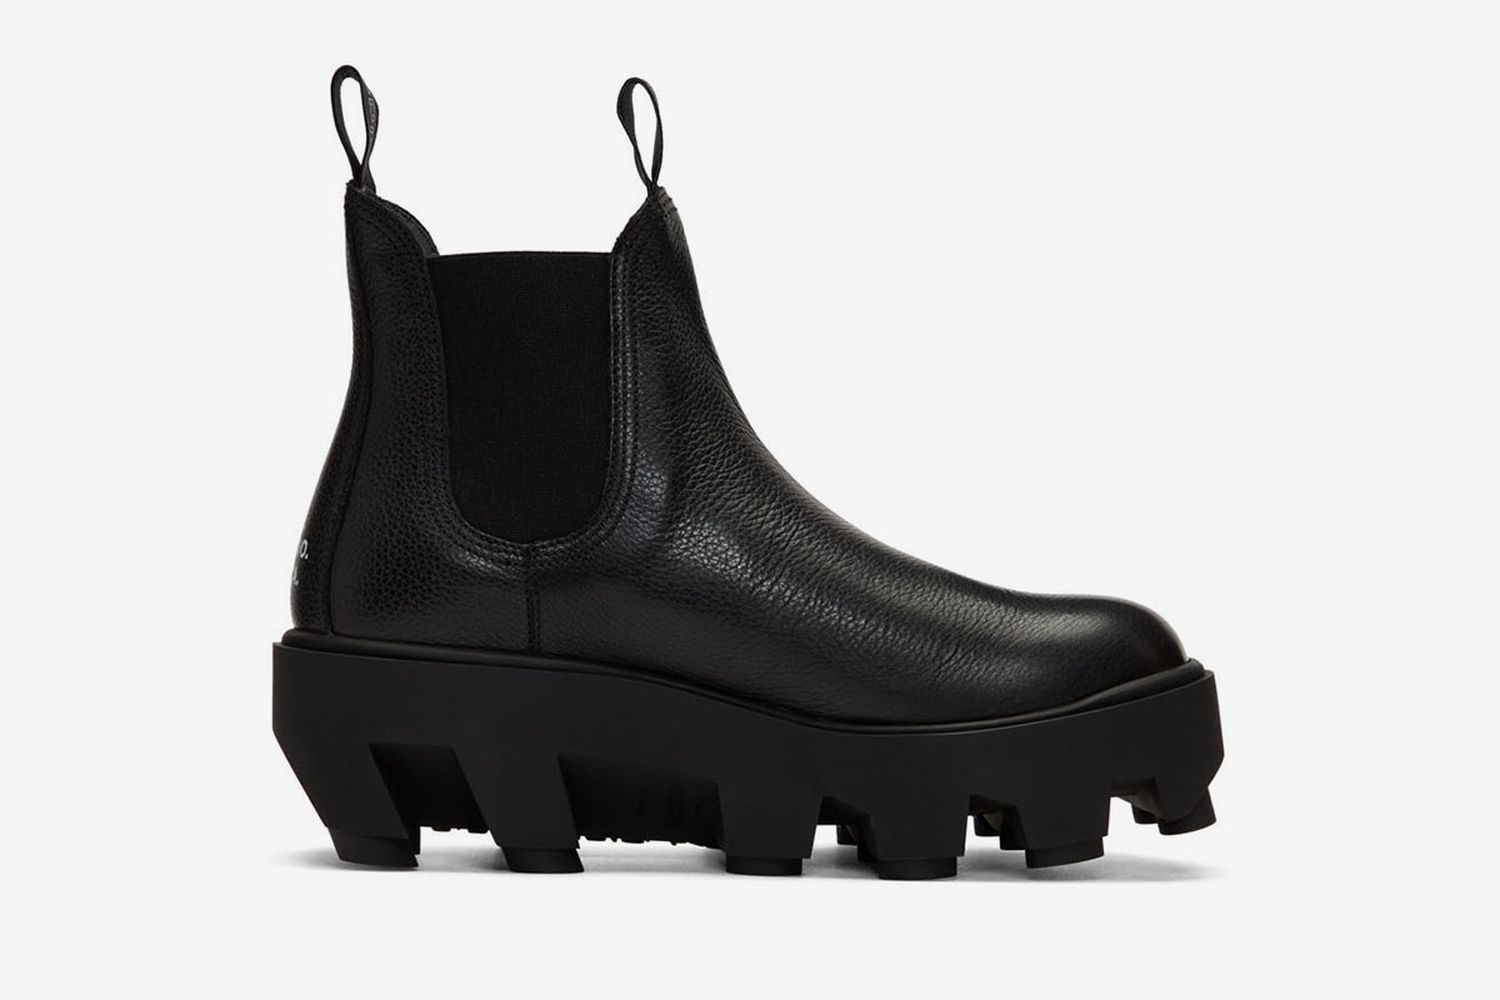 Therapist Slip-On Chelsea Boots